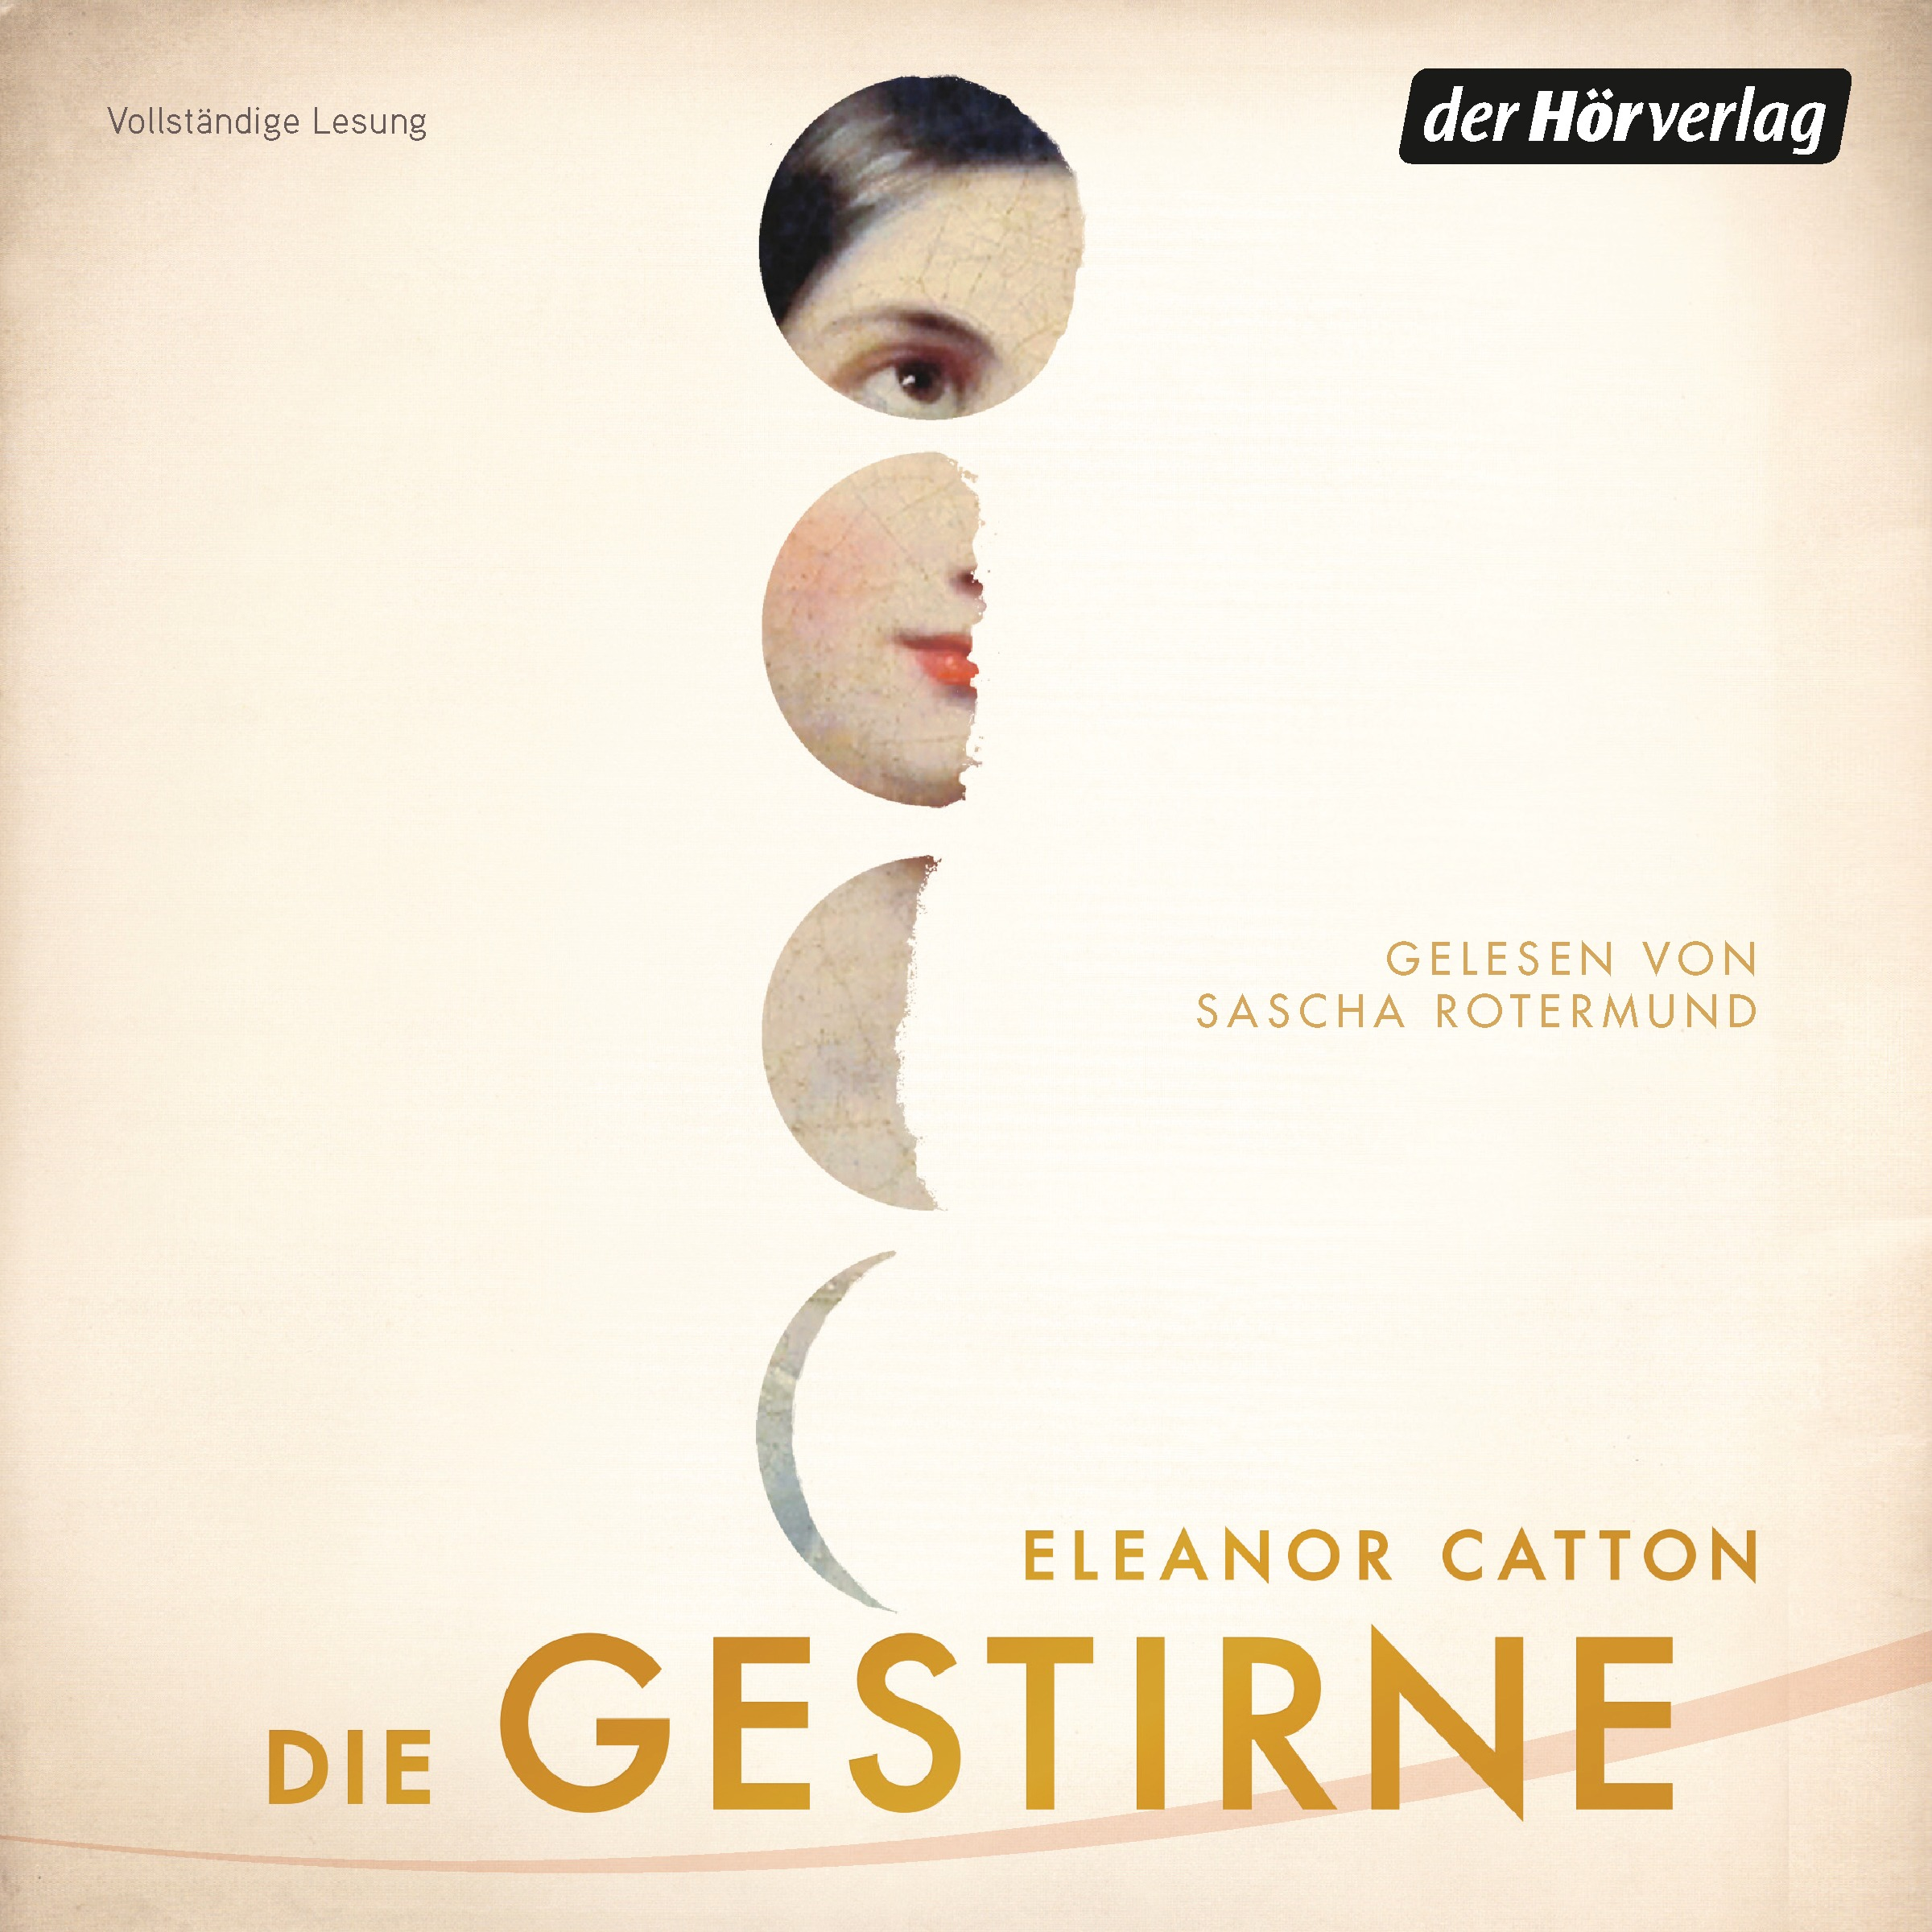 Eleanor catton die gestirne der hrverlag hrbuch download cover ccuart Image collections